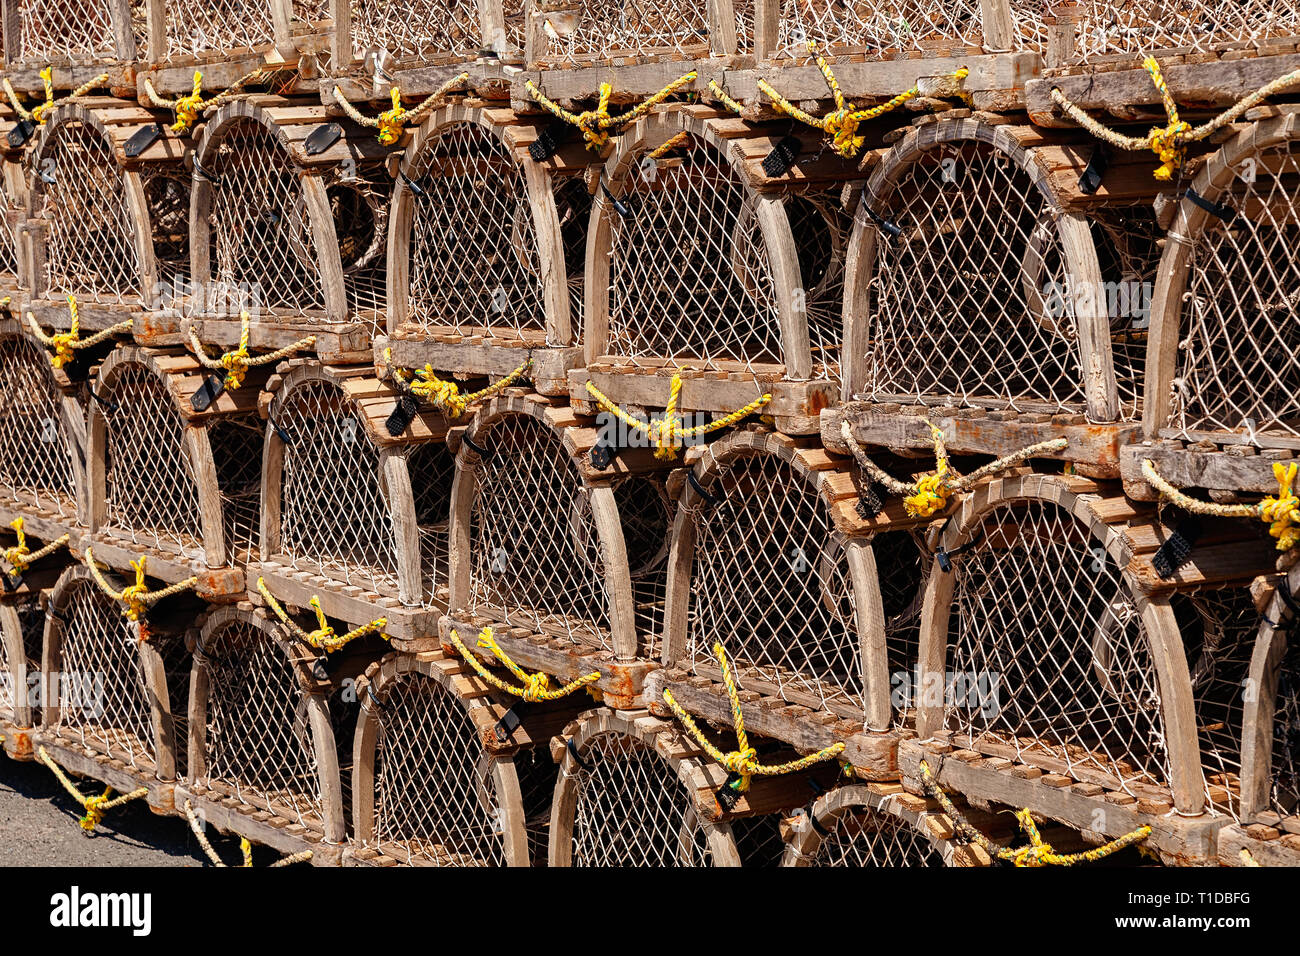 Stack of traditional wooden lobster traps for the commercial lobster fishery. - Stock Image